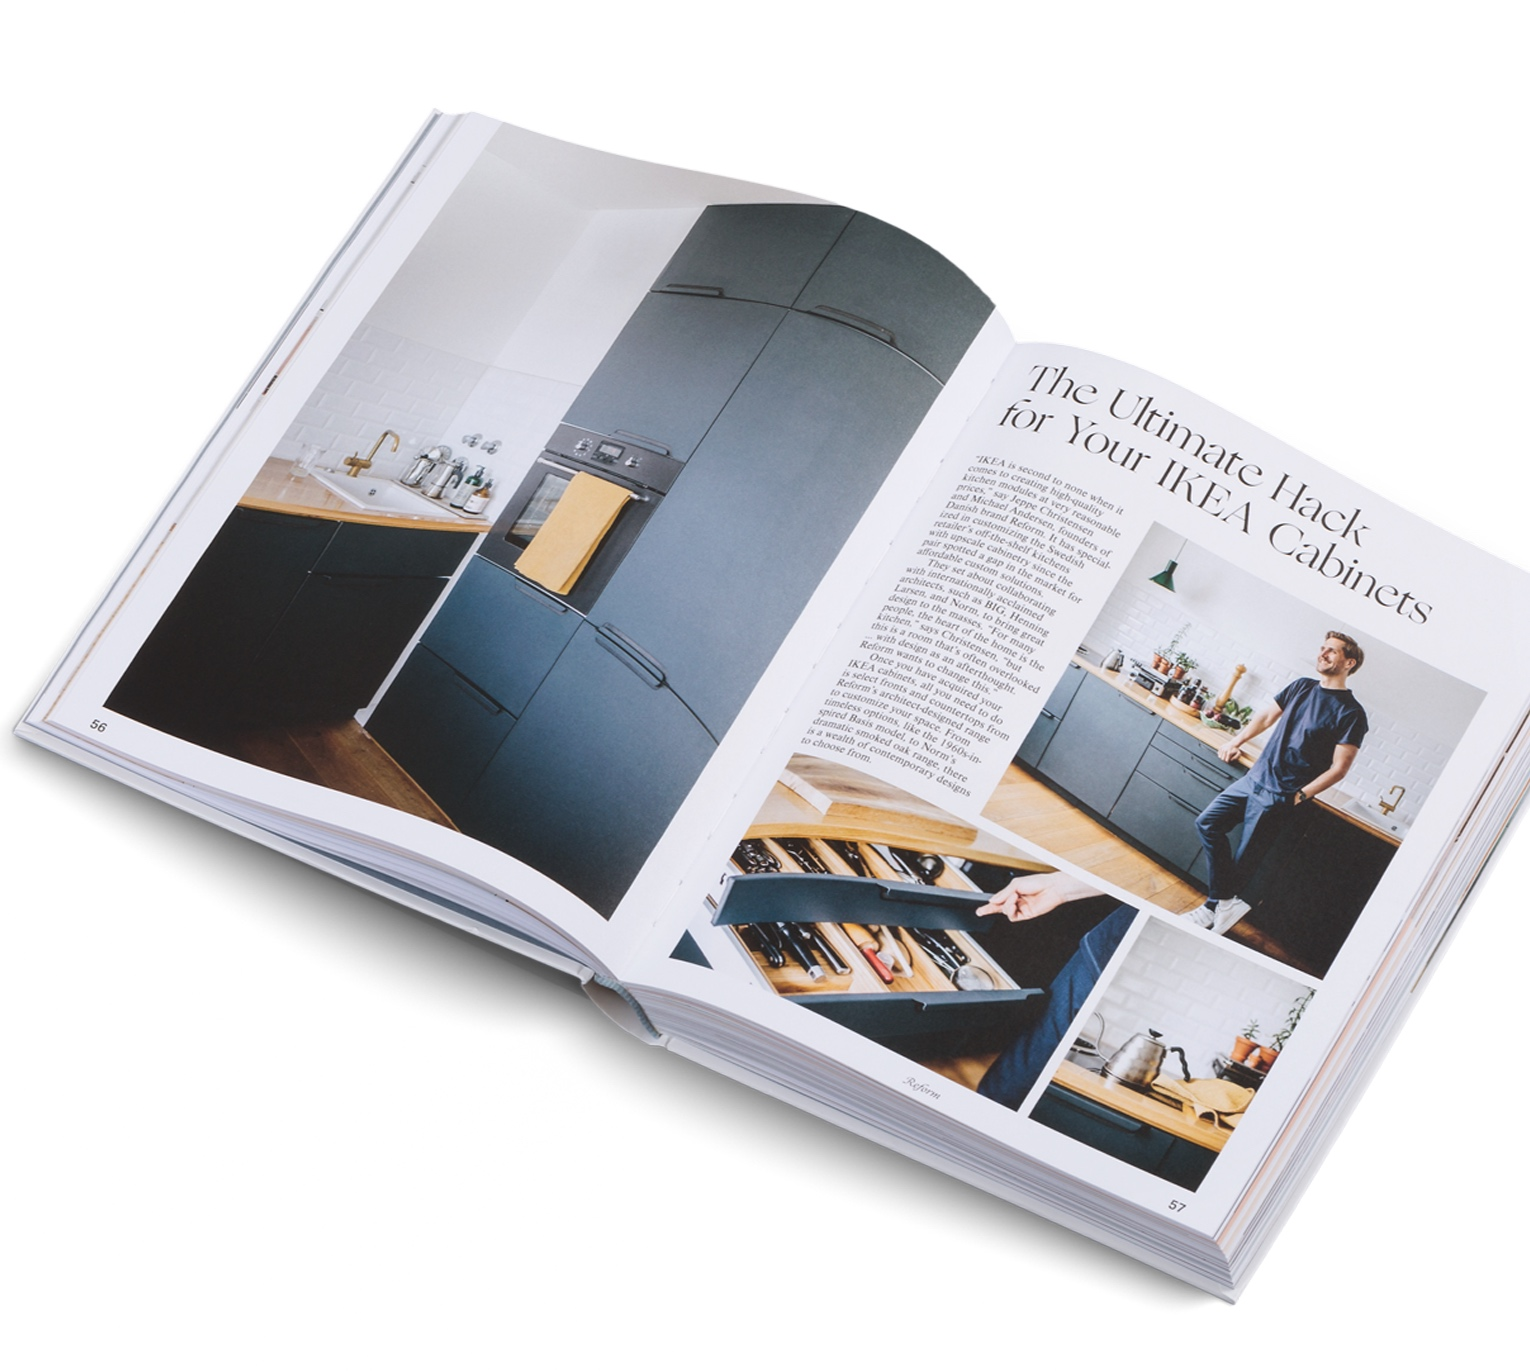 KitchenLivingEN_gestalten_book_contemporary_kitchen_interior_front_inside02_2000x.png